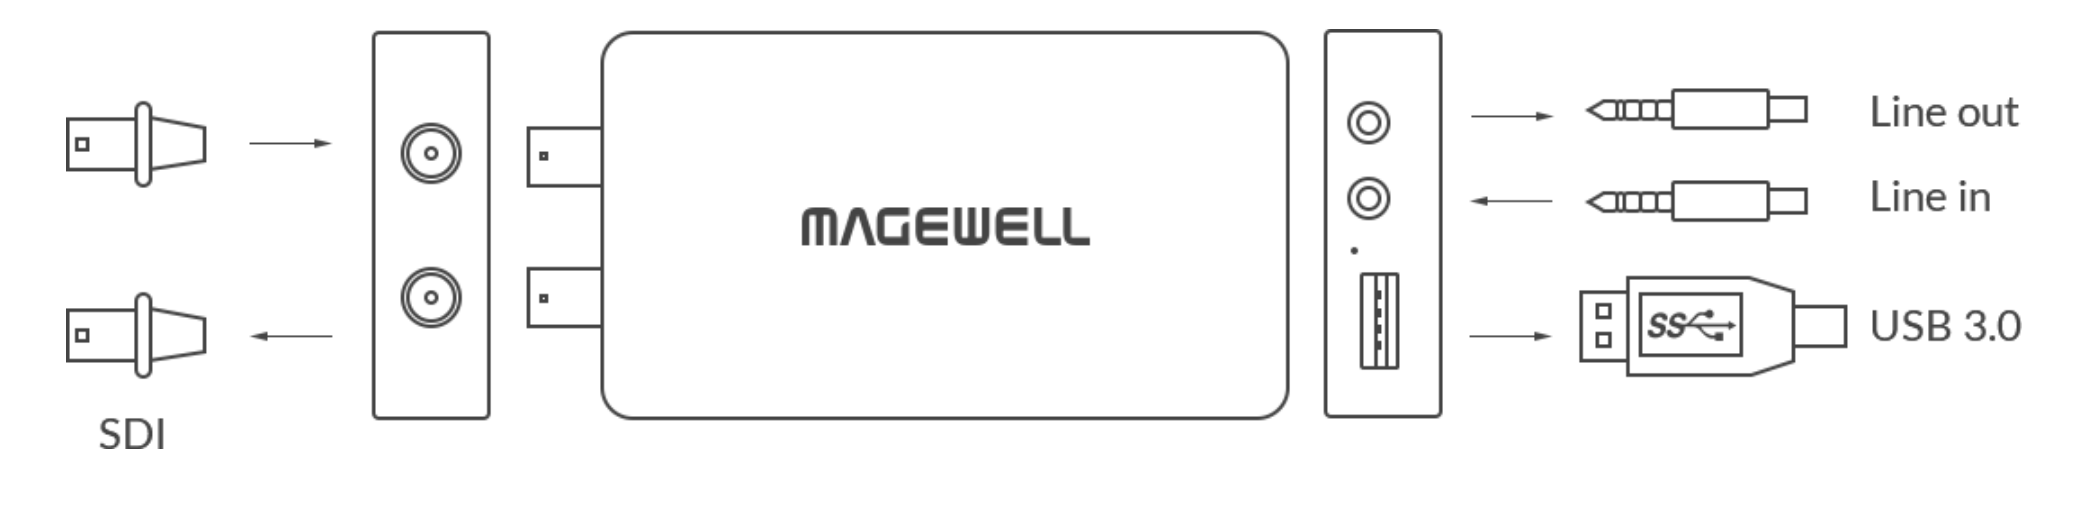 Magewell USB Capture SDI Plus